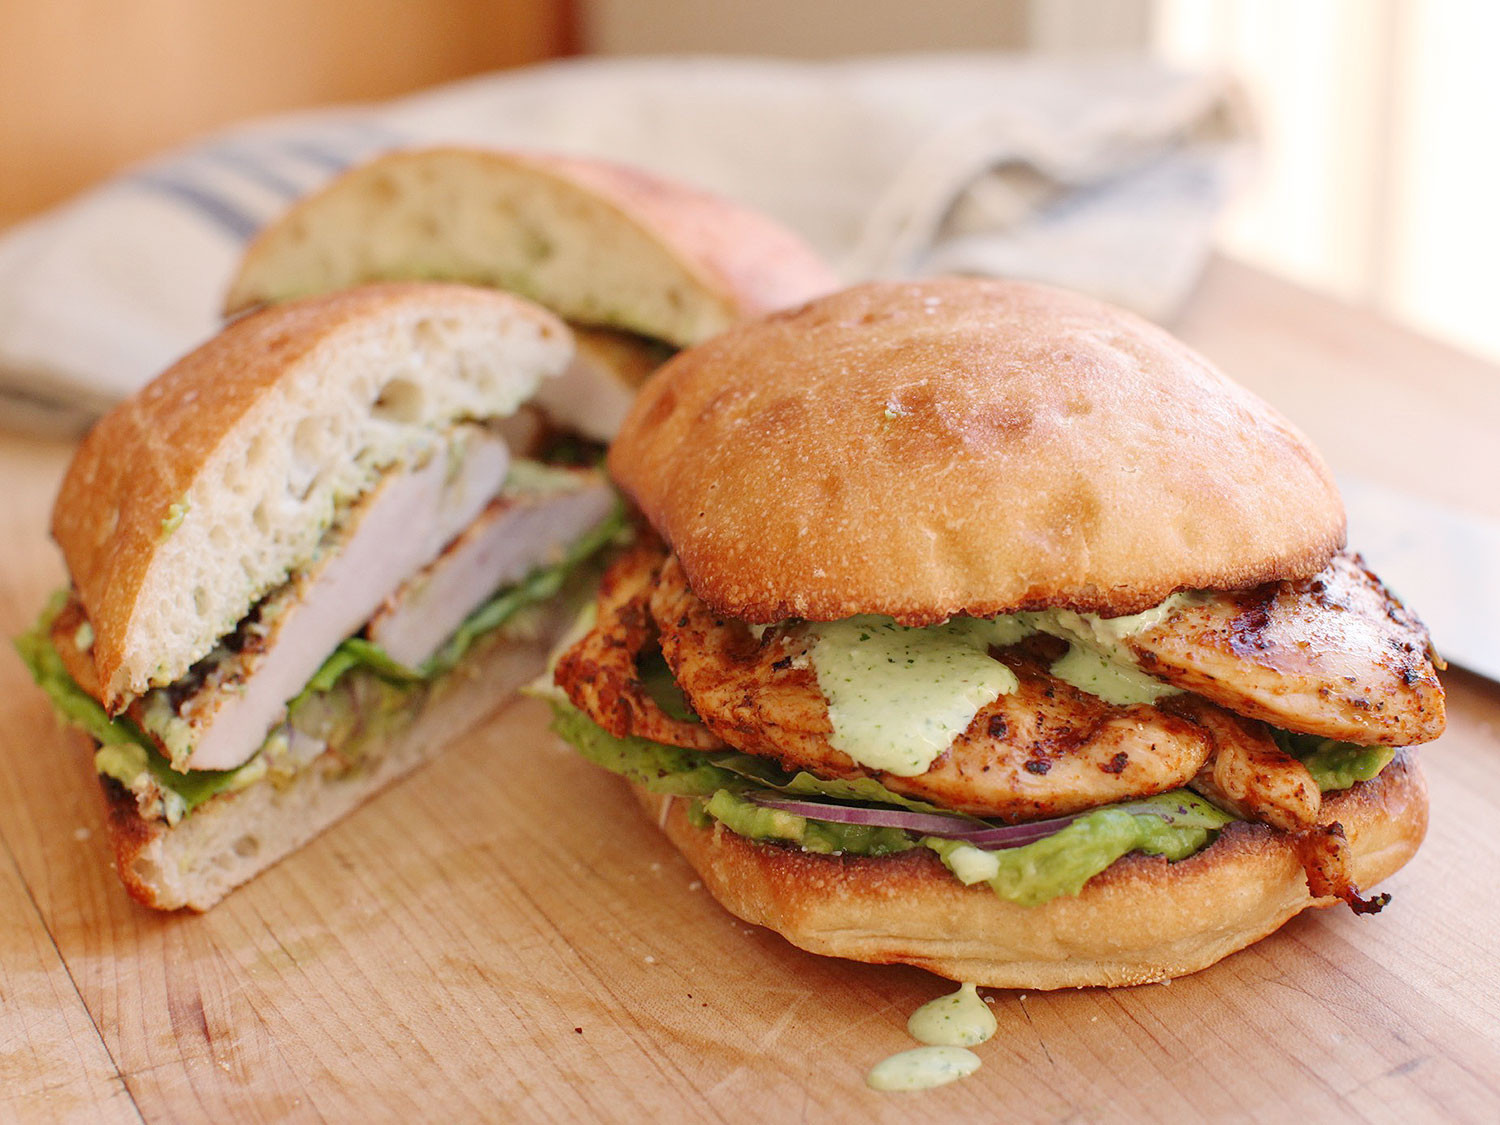 Barbecued Chicken Sandwiches  Make Peruvian Grilled Chicken Portable With These Tasty